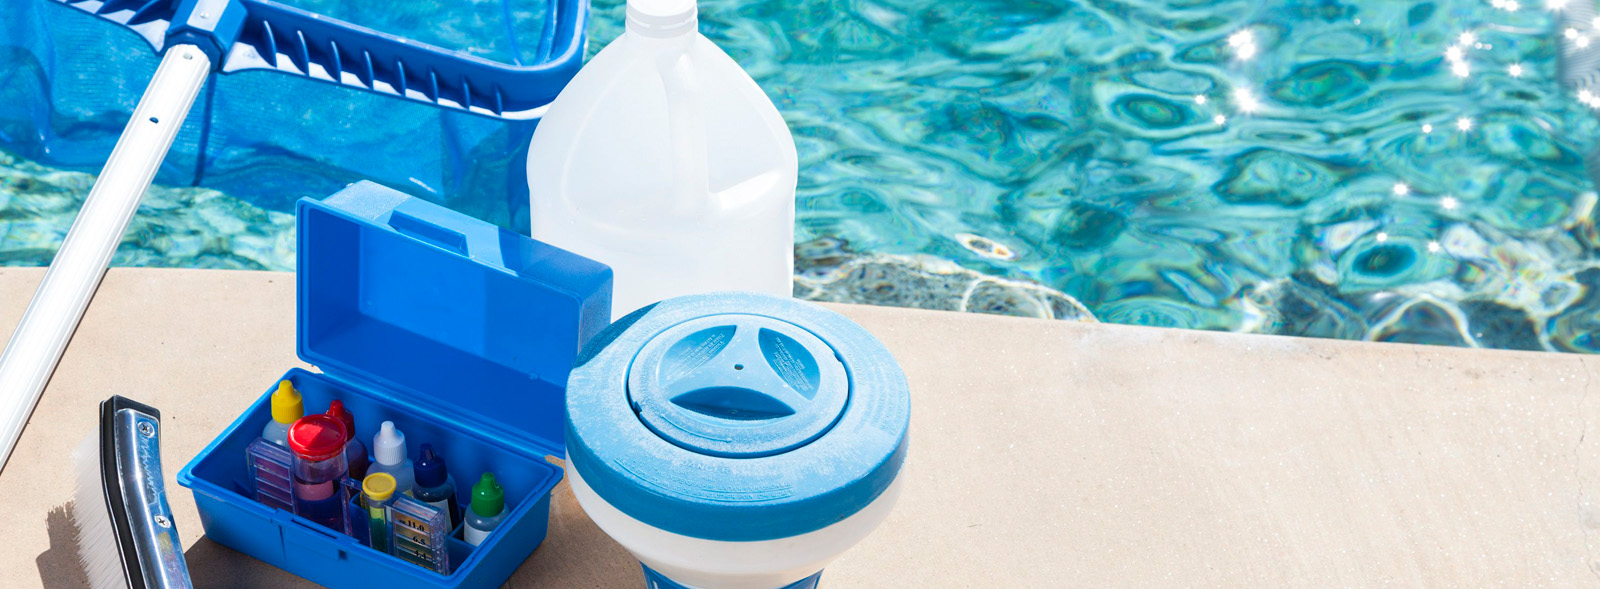 swimming pool accessories in southern suburbs atlantic seaboard cape town